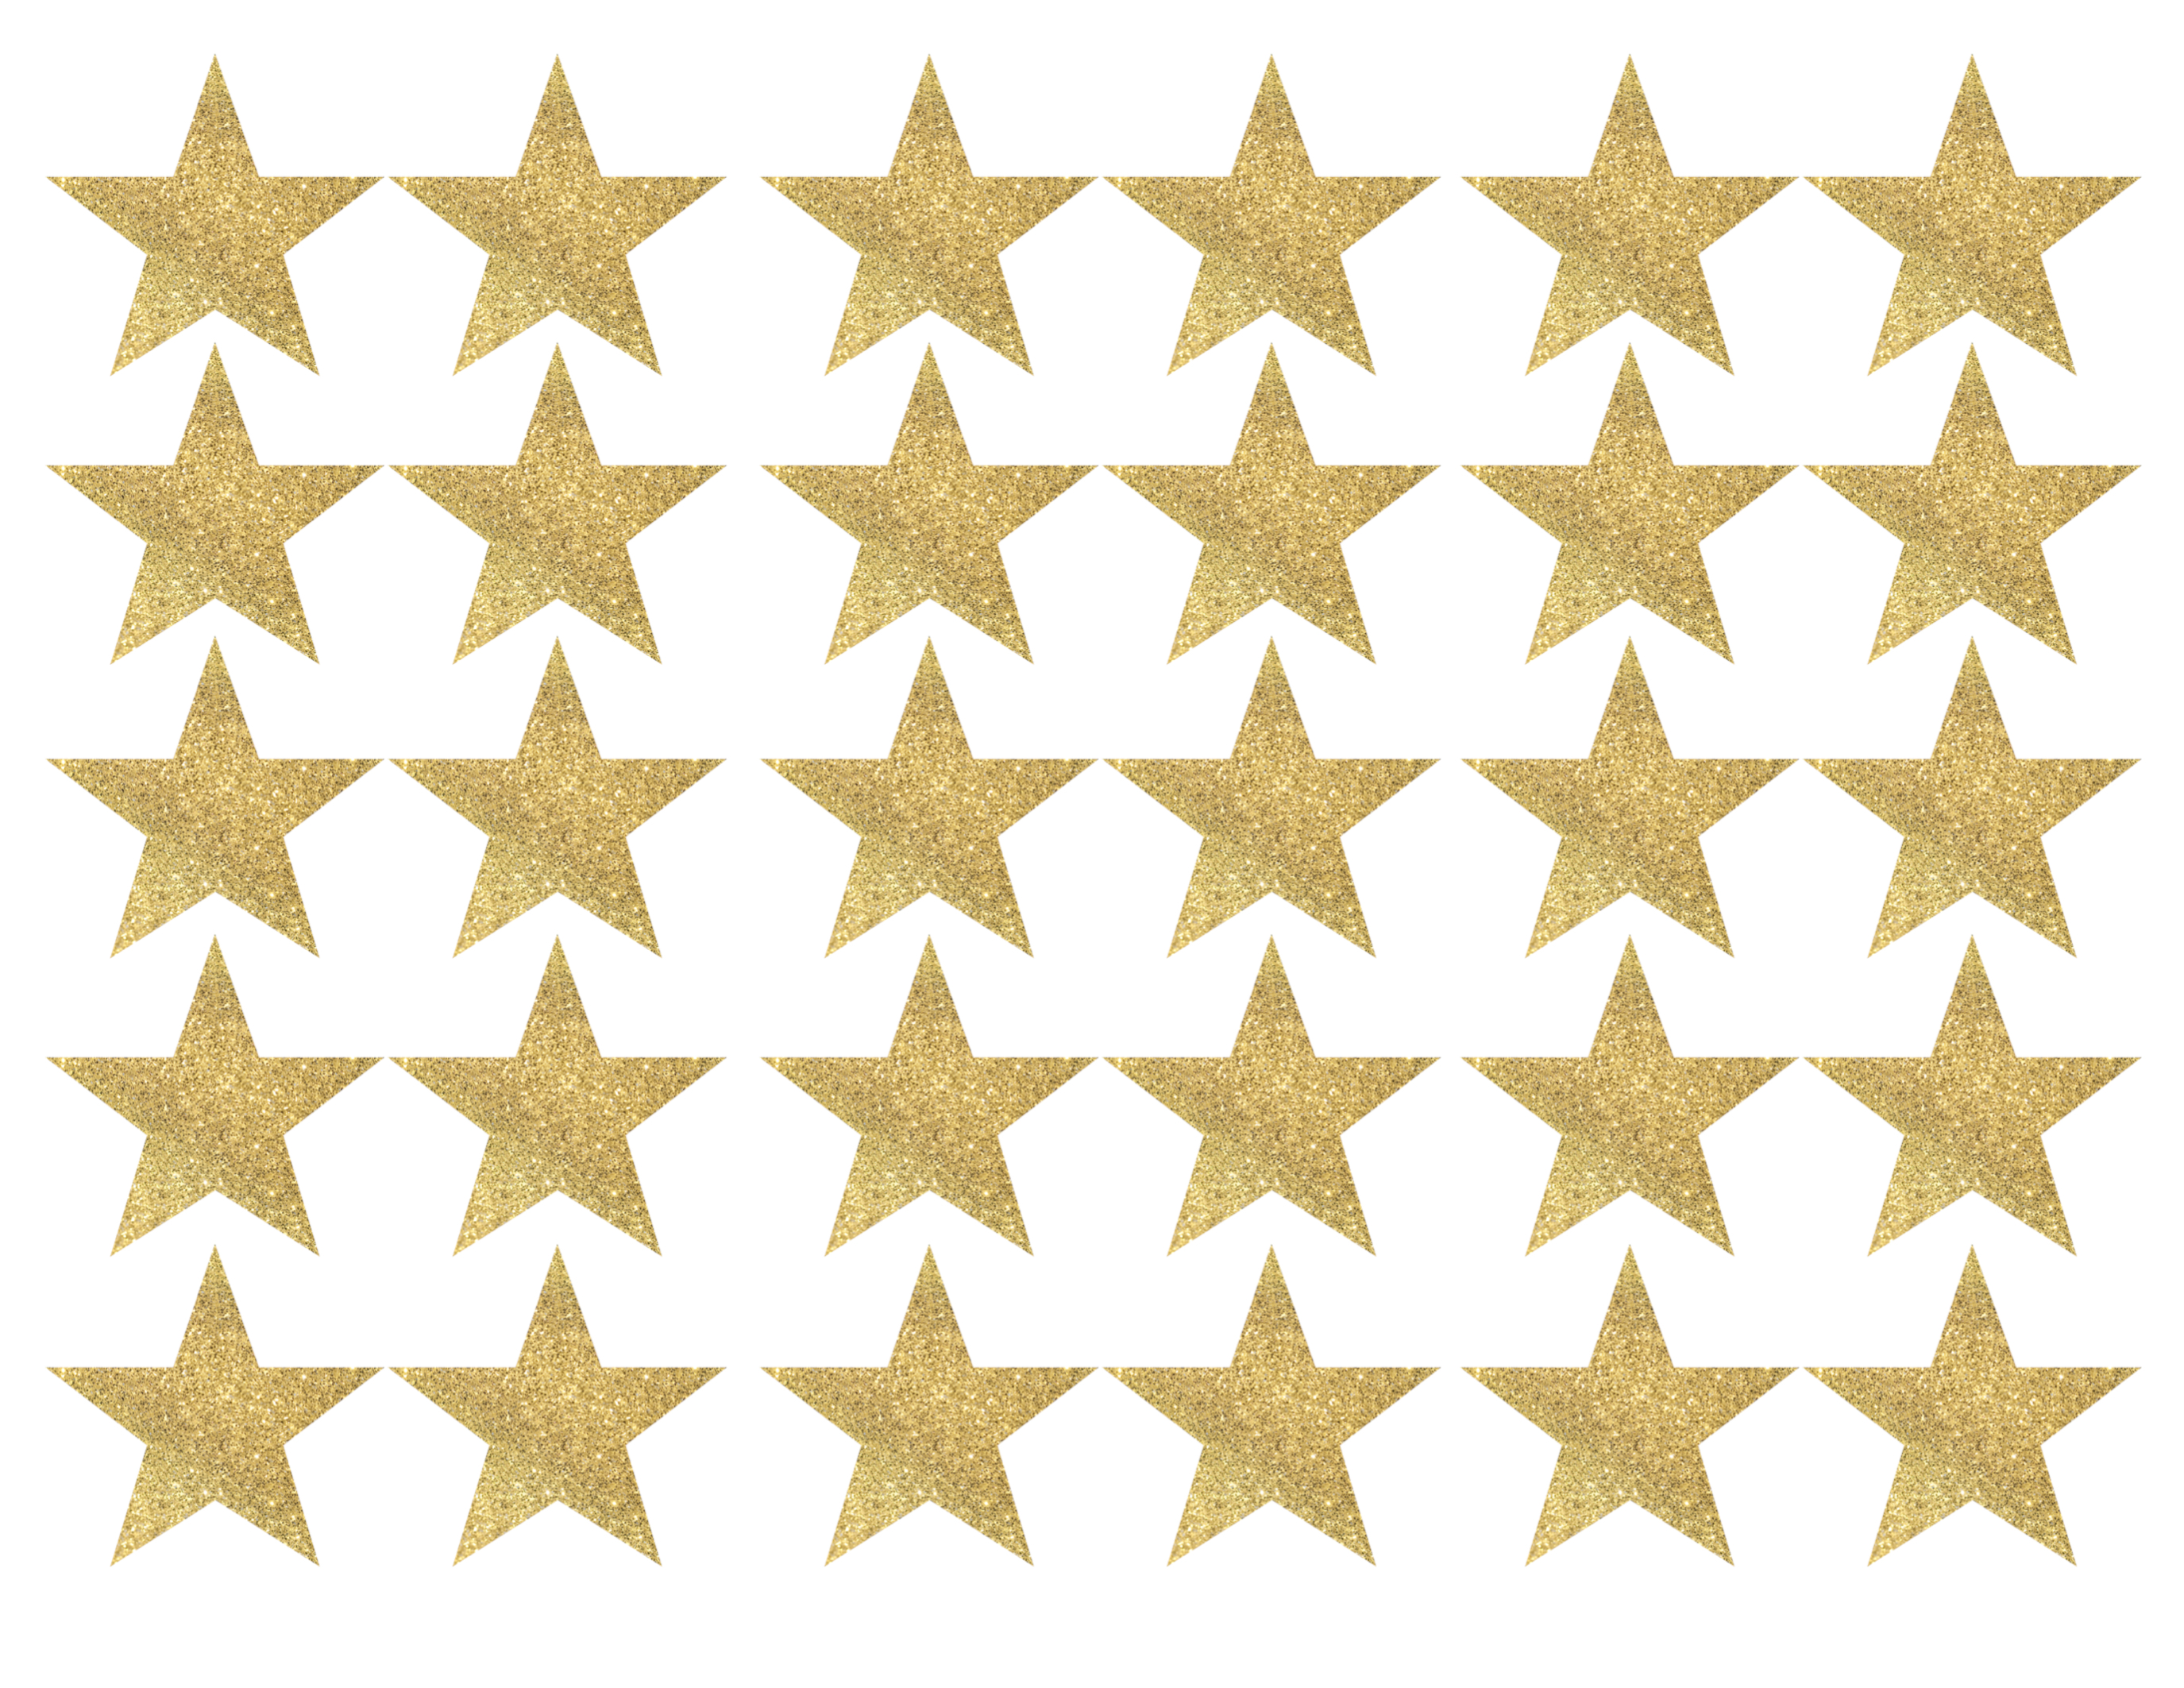 photograph relating to Stars Printable called Gold Star Banner Xmas Garland Printable - Paper Path